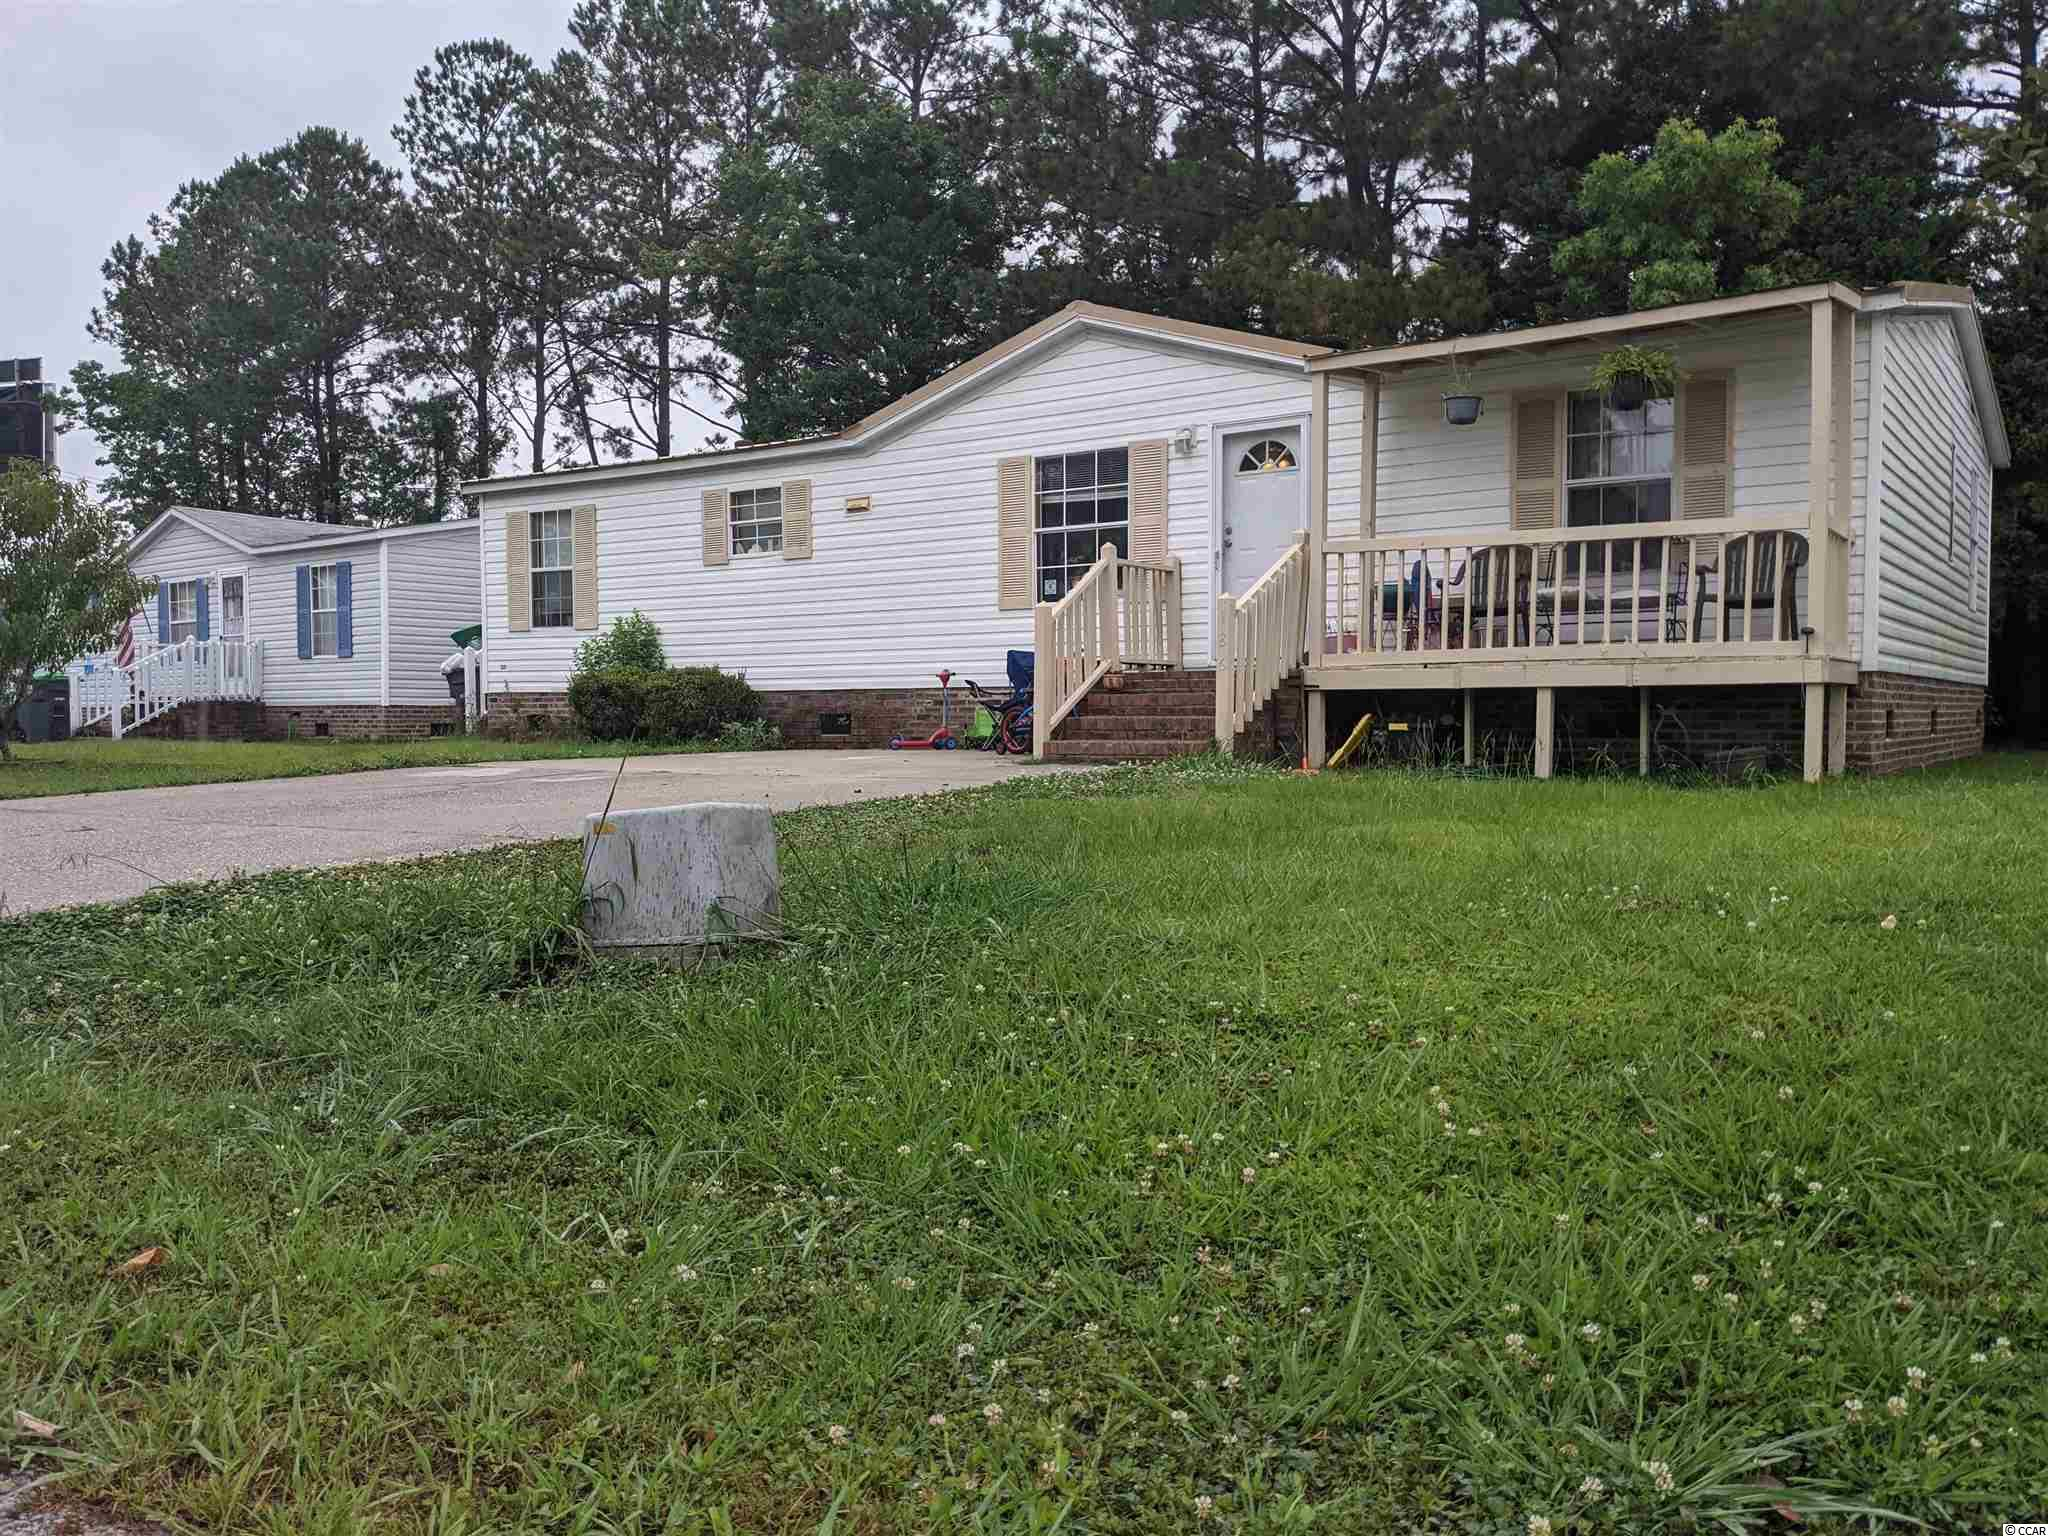 This 3 bedroom 2 bath home is located in a 55+ community. The owner has made improvements during her ownership. These improvements include Metal Roof, New Flooring, HVAC replacement, Stove upgrade, Sliding Glass Door and Front Door. This home has a split bedroom plan, storage building, oversized back deck and a new extended front porch. This home is being sold as is, seller is not aware of anything wrong other than some cosmetic items.